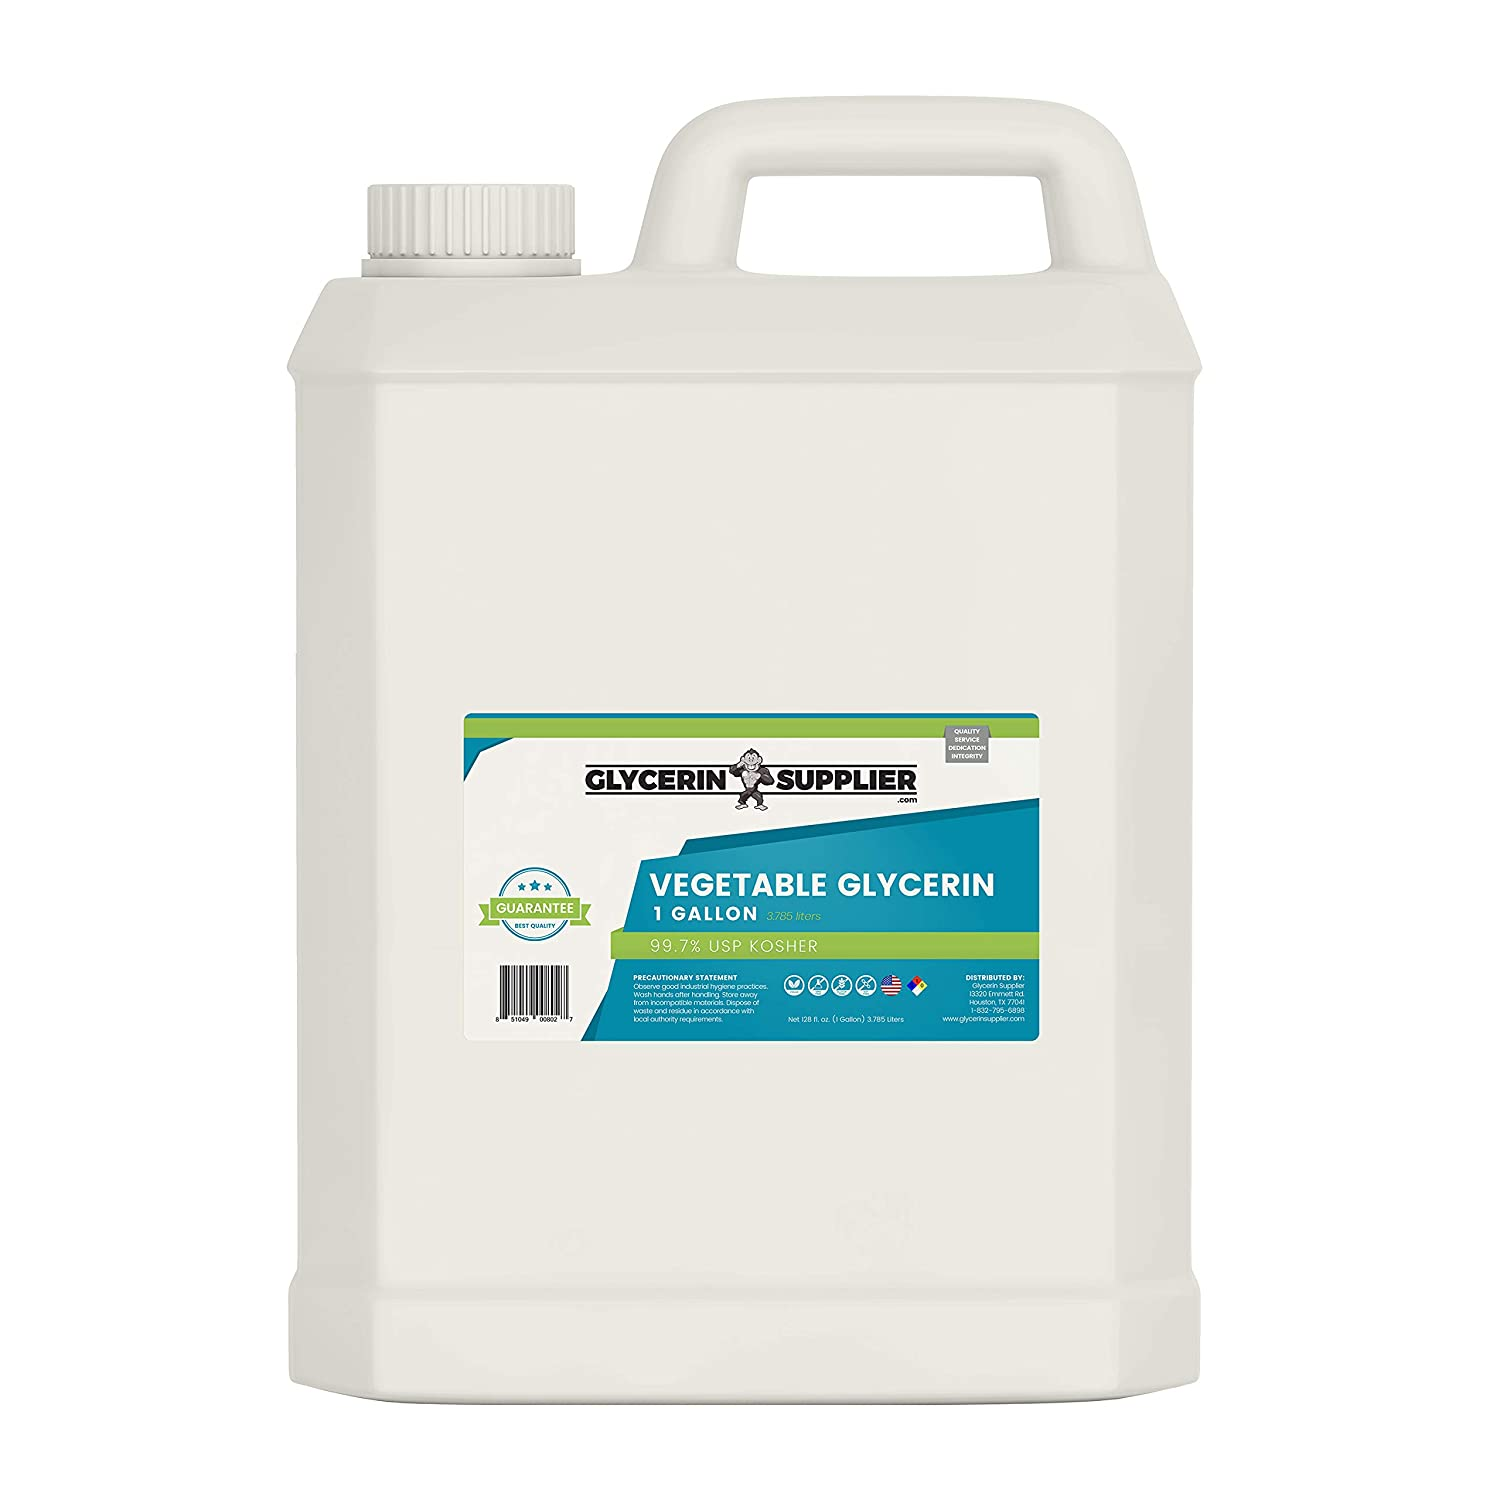 Vegetable Glycerin - 1 Gallon (128 oz.) - Pure USP Food and Pharmaceutical Grade - Non GMO - Vegan - Sustainable Palm Derived - Humectant, Crafts, DIY, Hypoallergenic Moisturizer, Extracts